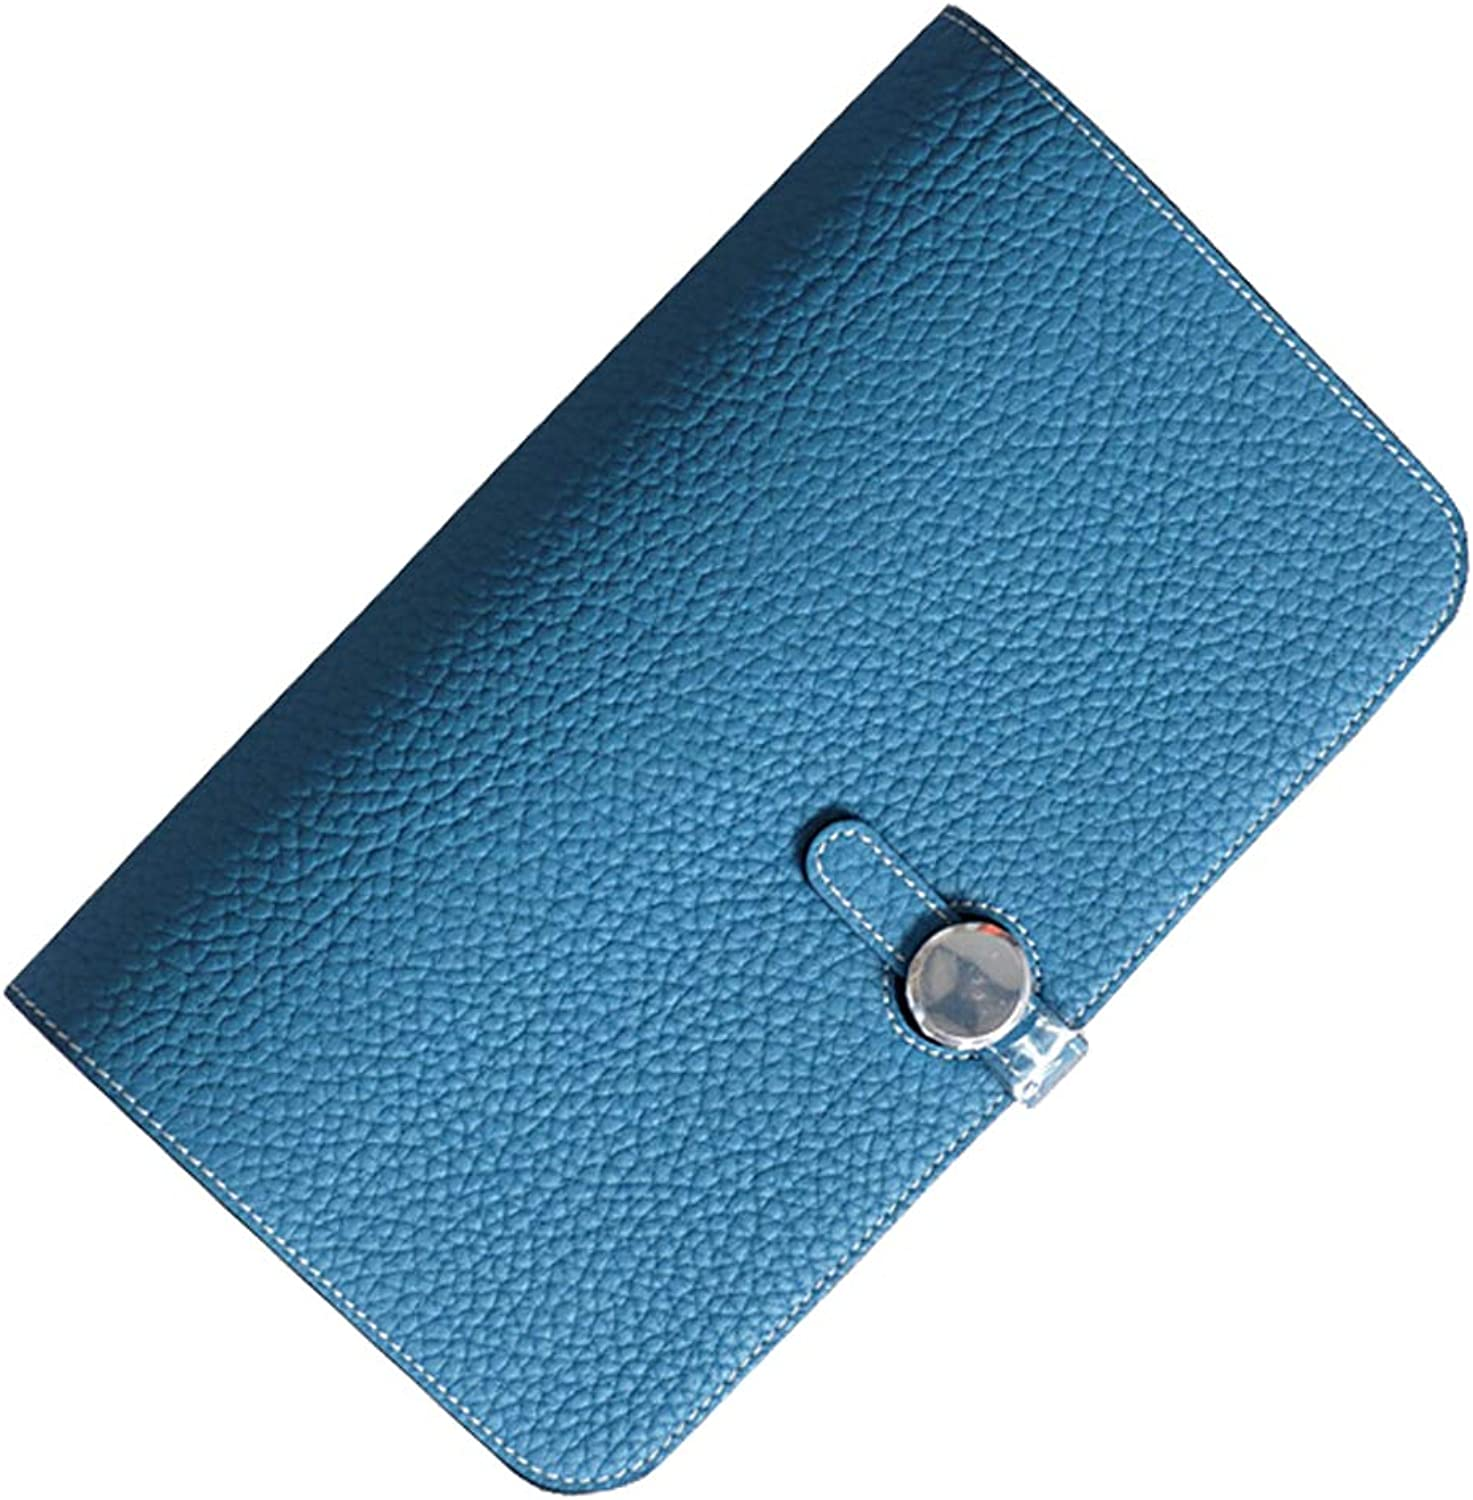 FblueE Women's Leather Passport Case Car Holder Thin Wallet Check Wallet FB011 (bluee)